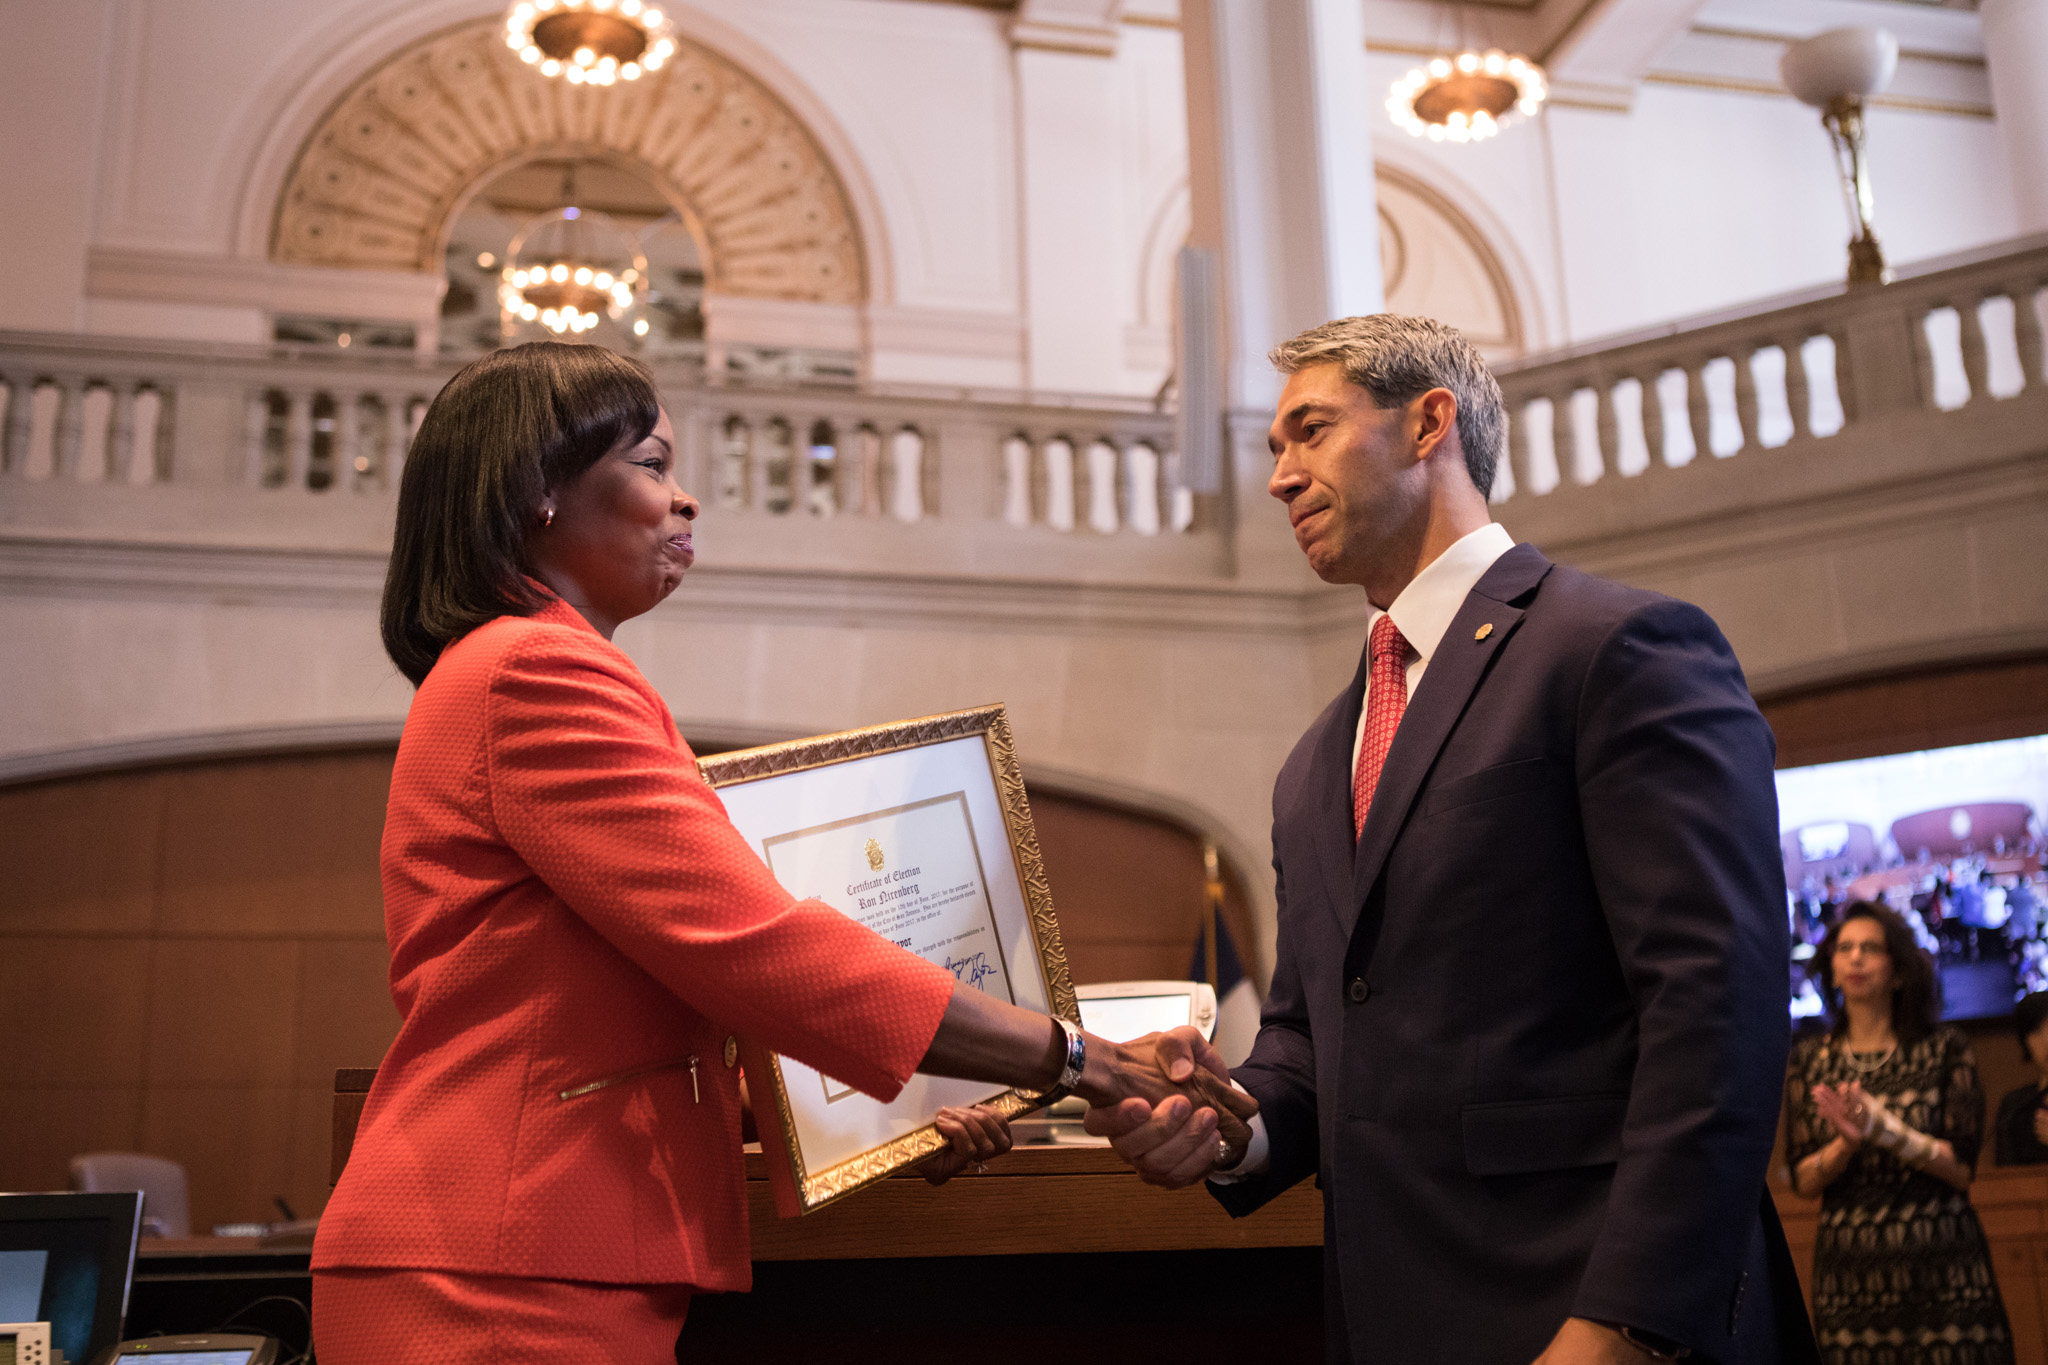 Outgoing Mayor Ivy Taylor gives Mayor-elect Ron Nirenberg the certificate of election, marking the beginning of his term in office.